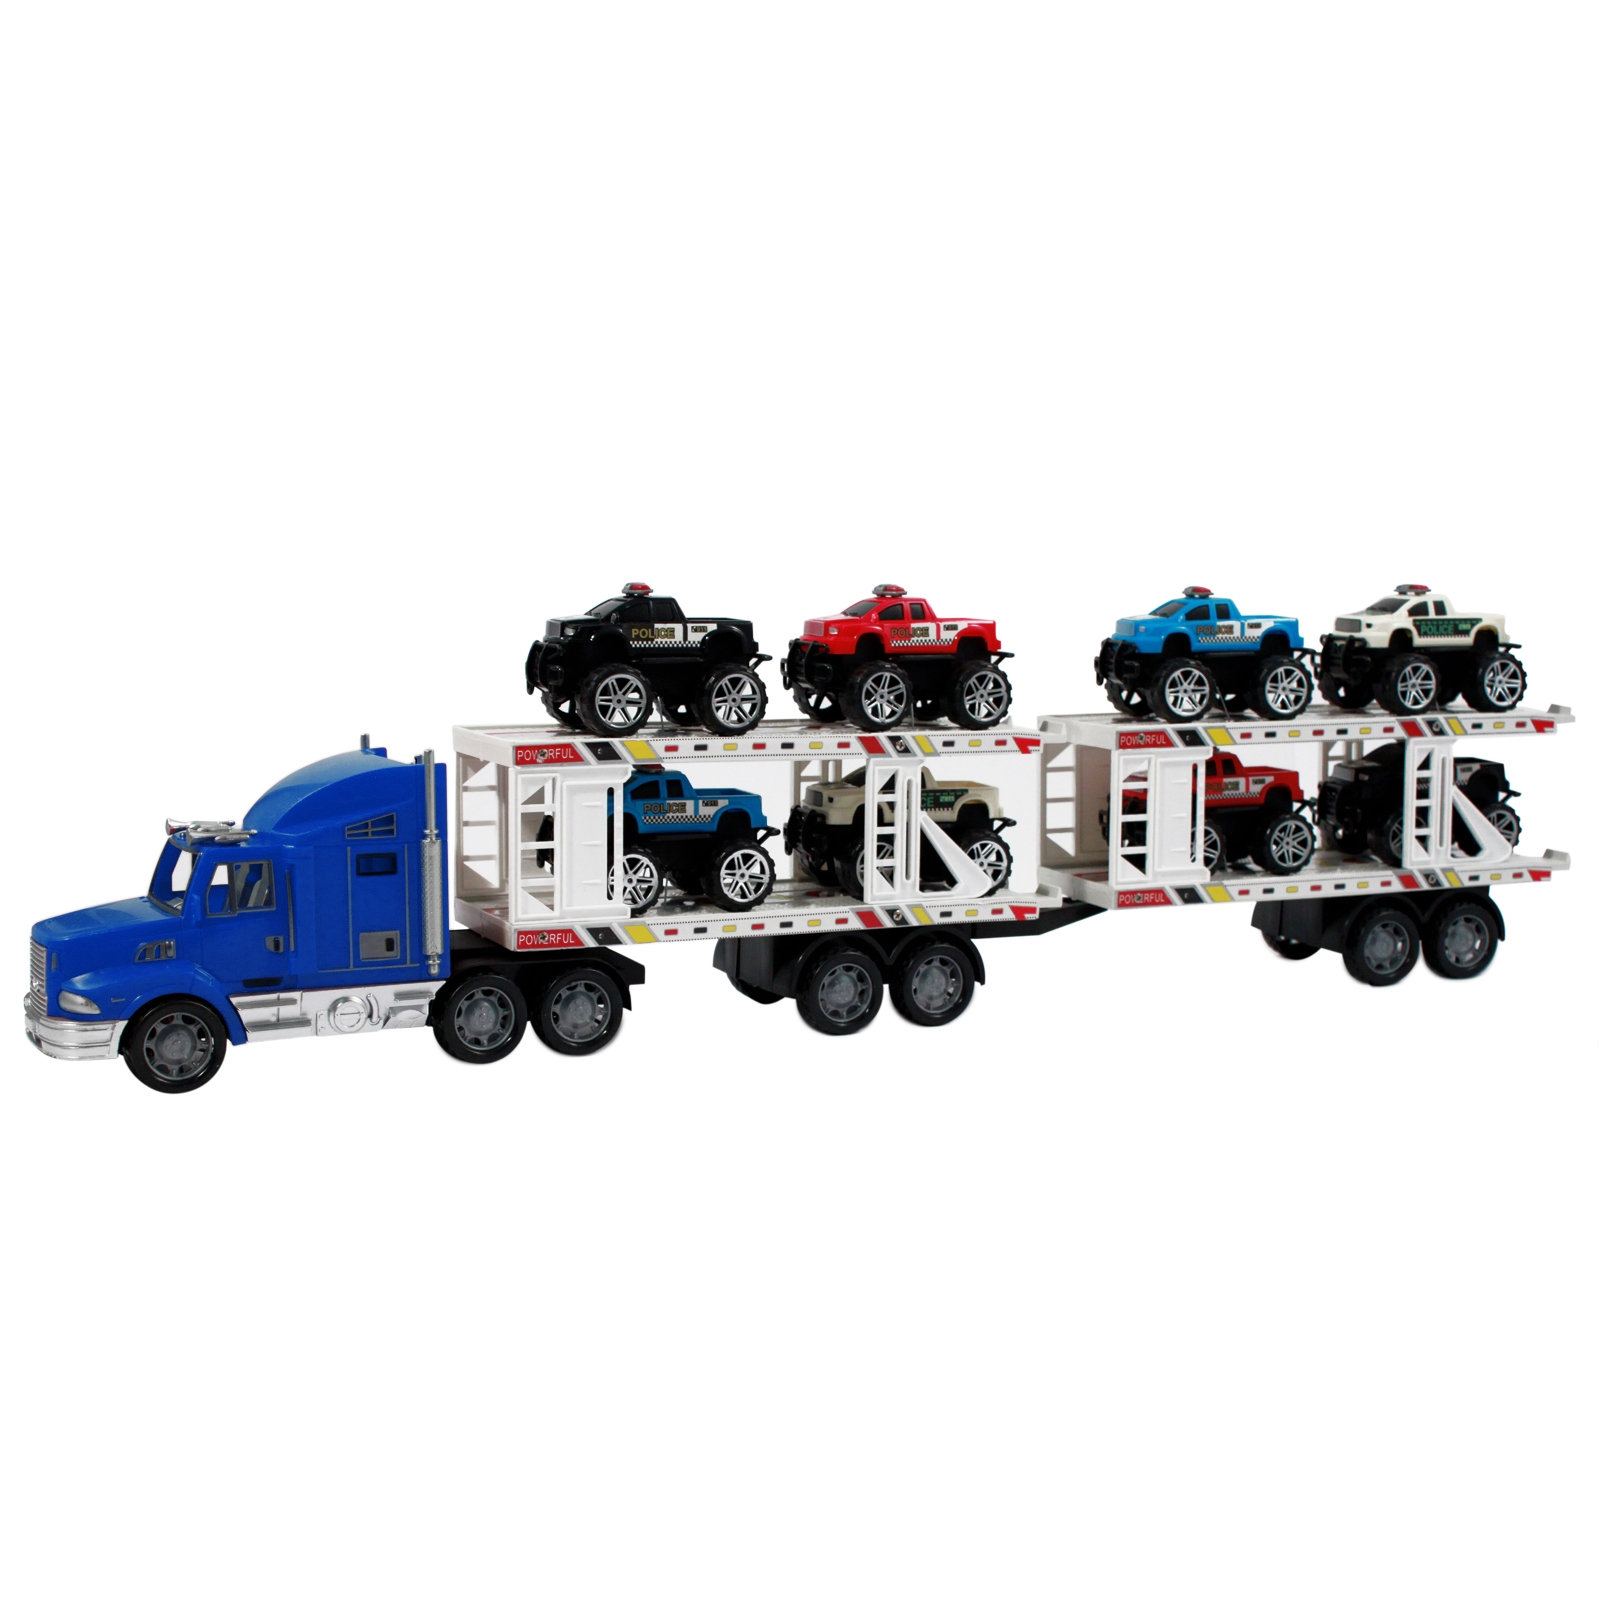 Deluxe Toy Truck Auto Hauler Kids and Boys in Bright Blue